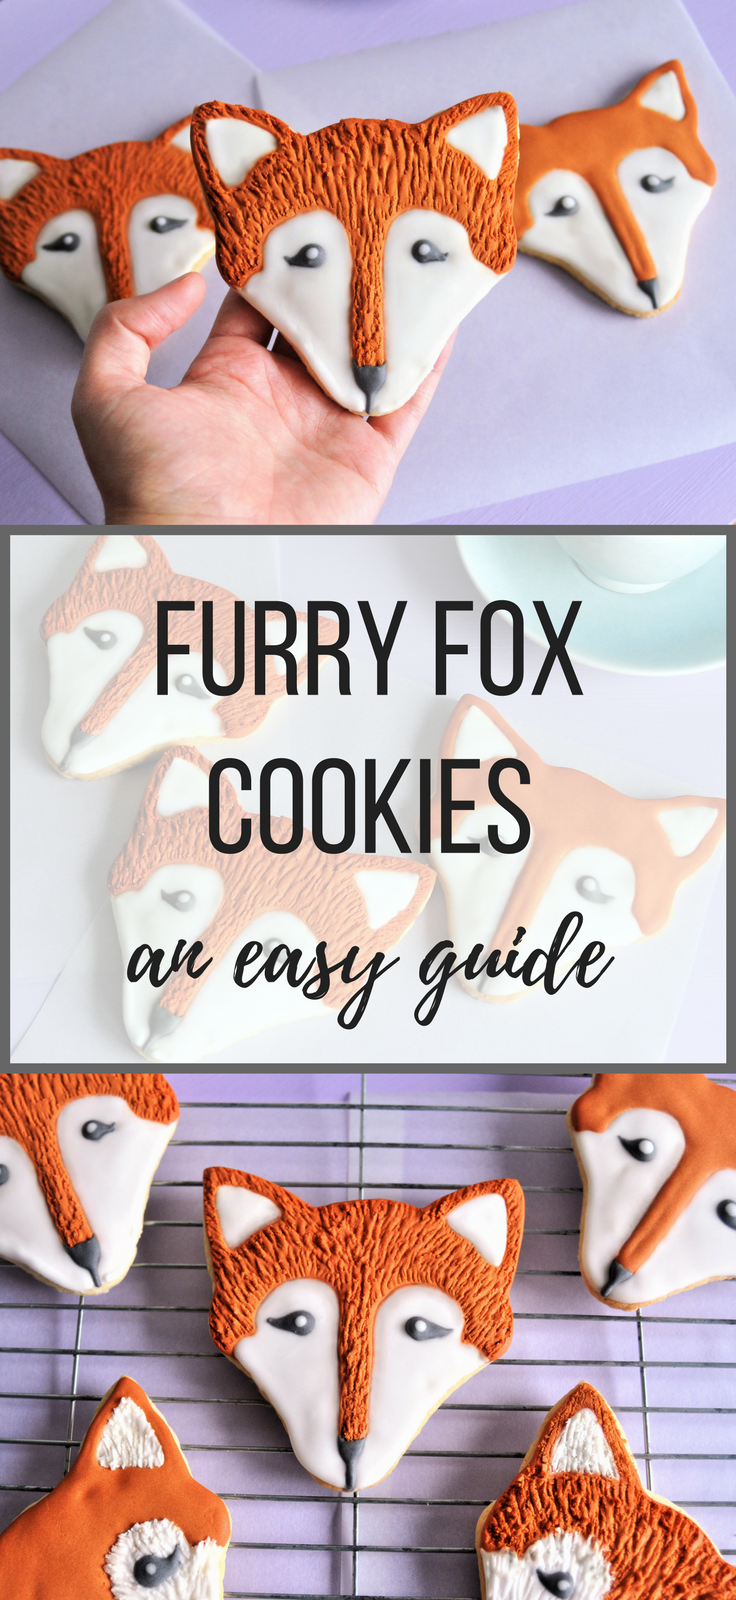 Fox cookie recipe with step by step instructions to add furry texture into the lil cuties